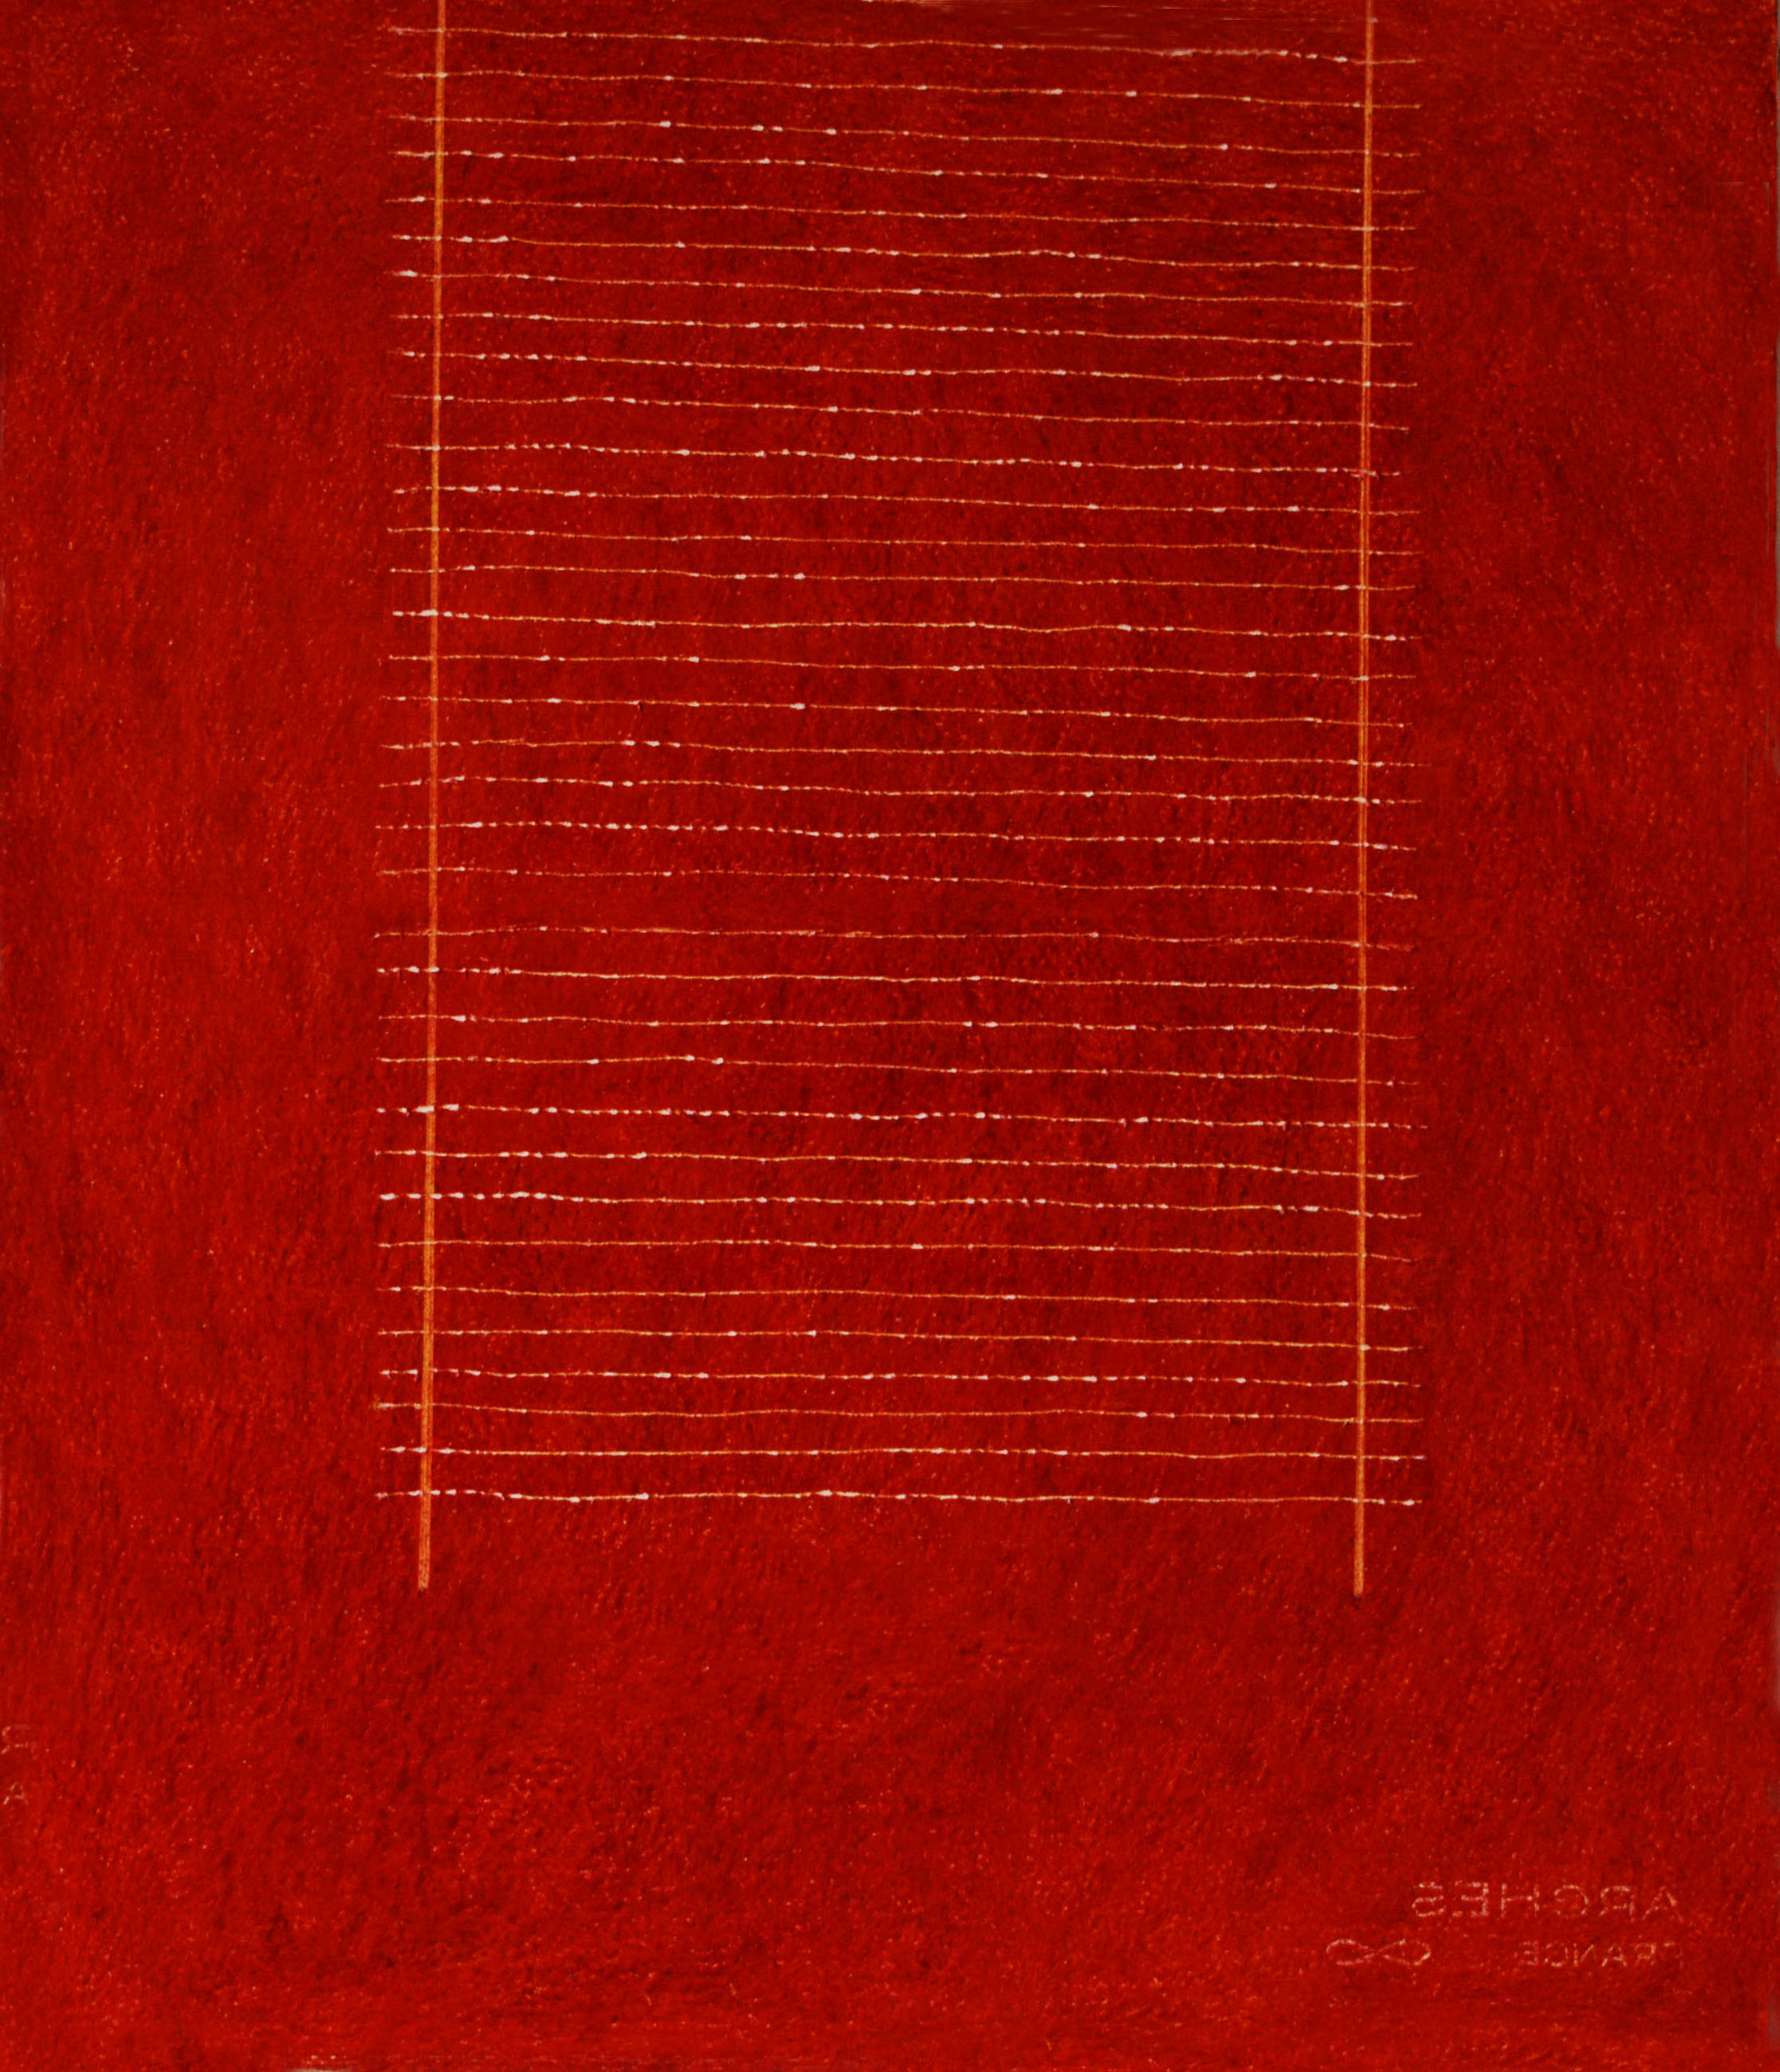 Edda Renouf Dawn Letter-7 2014 scraped and incised oil pastel on Arches paper 17 3/4 x 14 7/8 inches